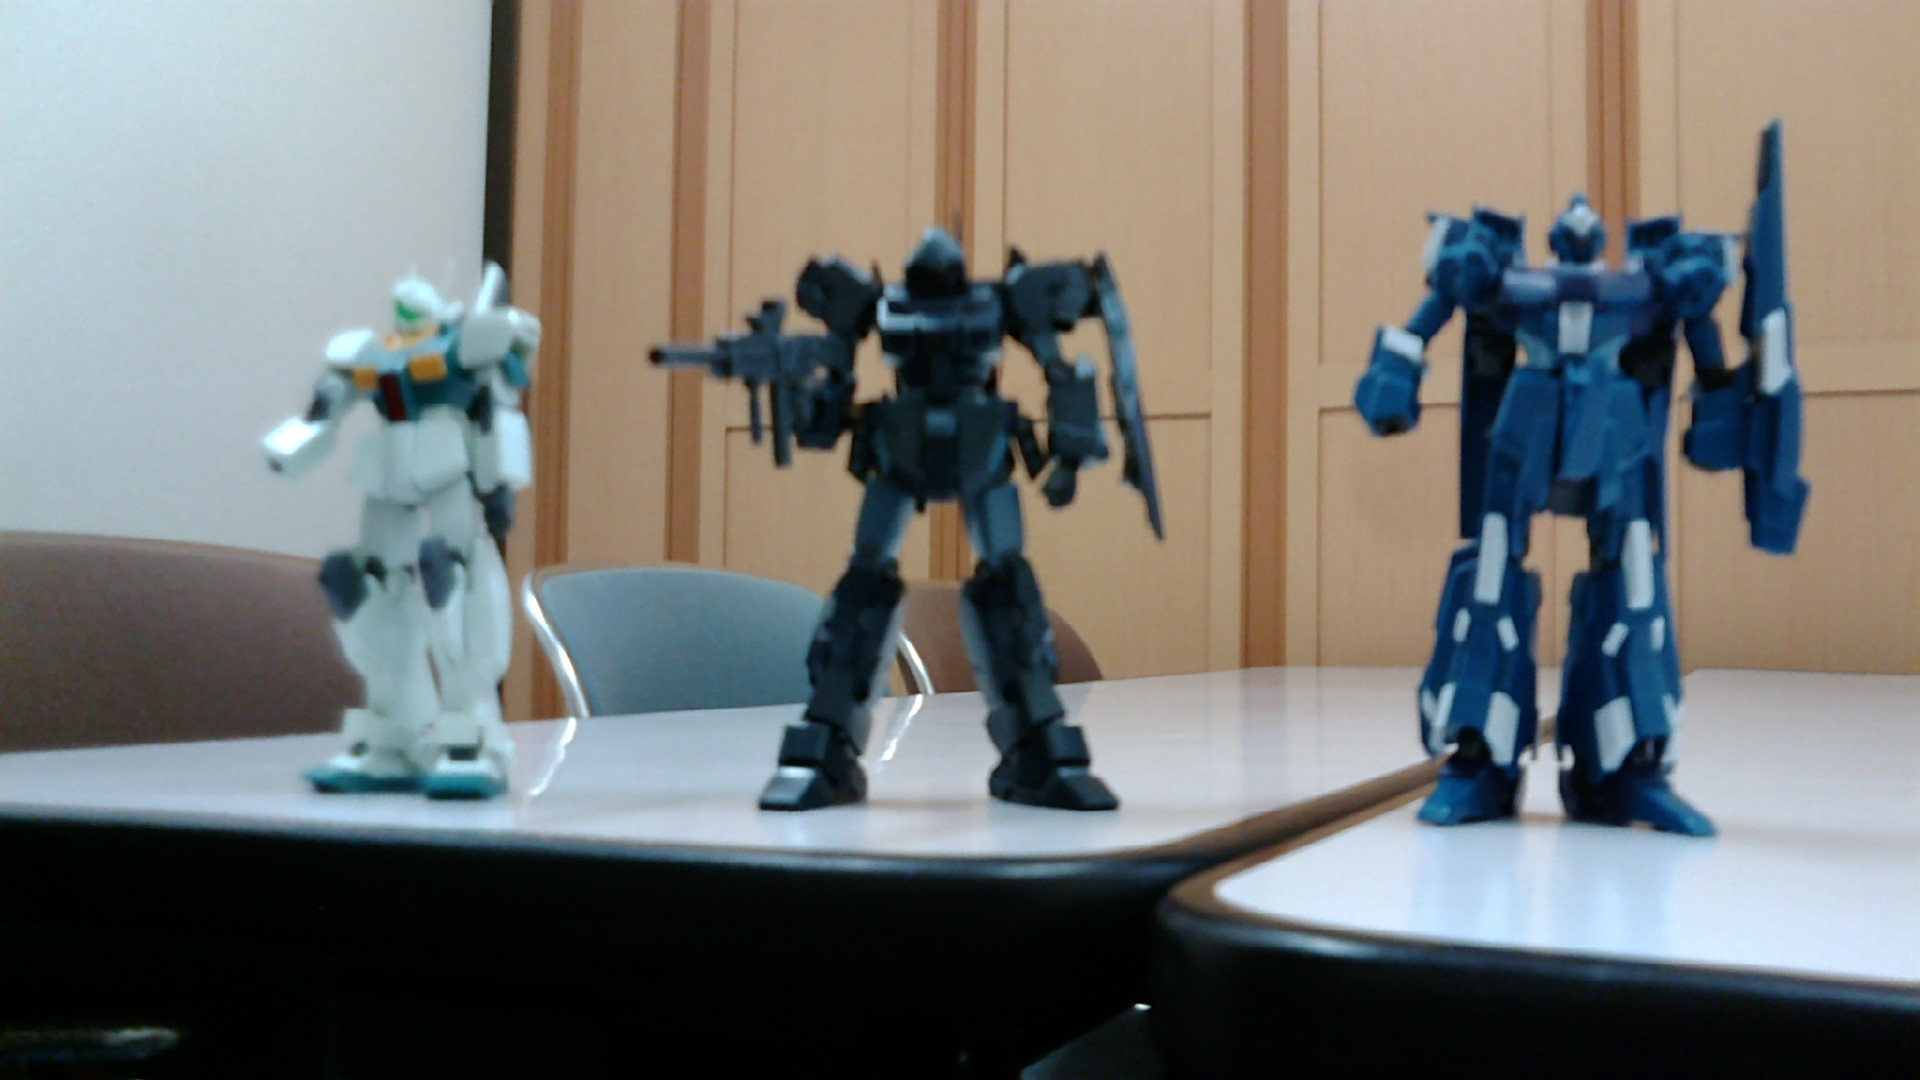 RGM 96X Jesta Wallpaper Size Images assembled gunpla wlinks to buy it 1920x1080